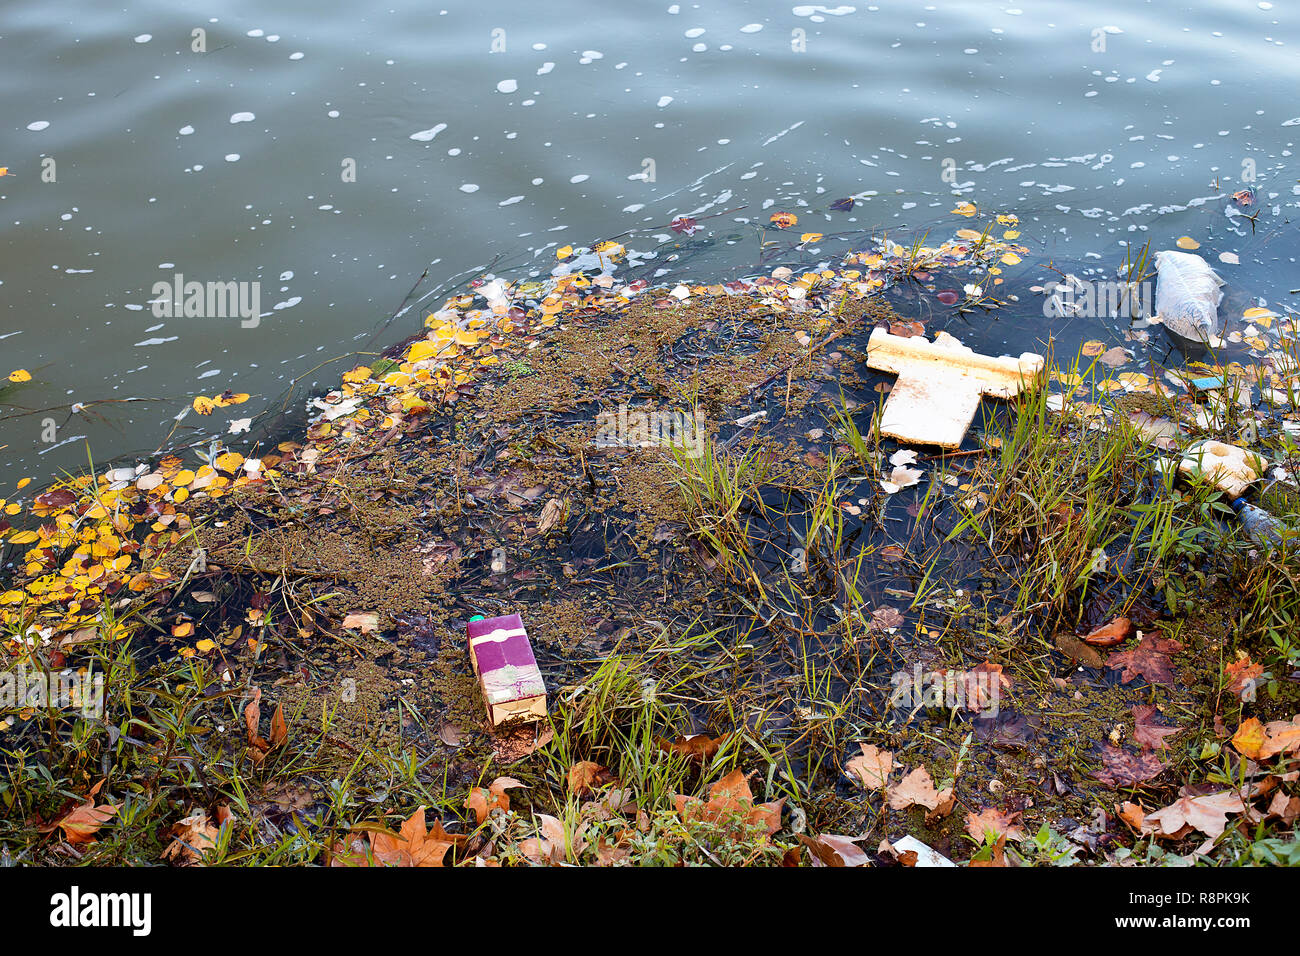 plastic and ribbish floating on water.River pollution - Stock Image